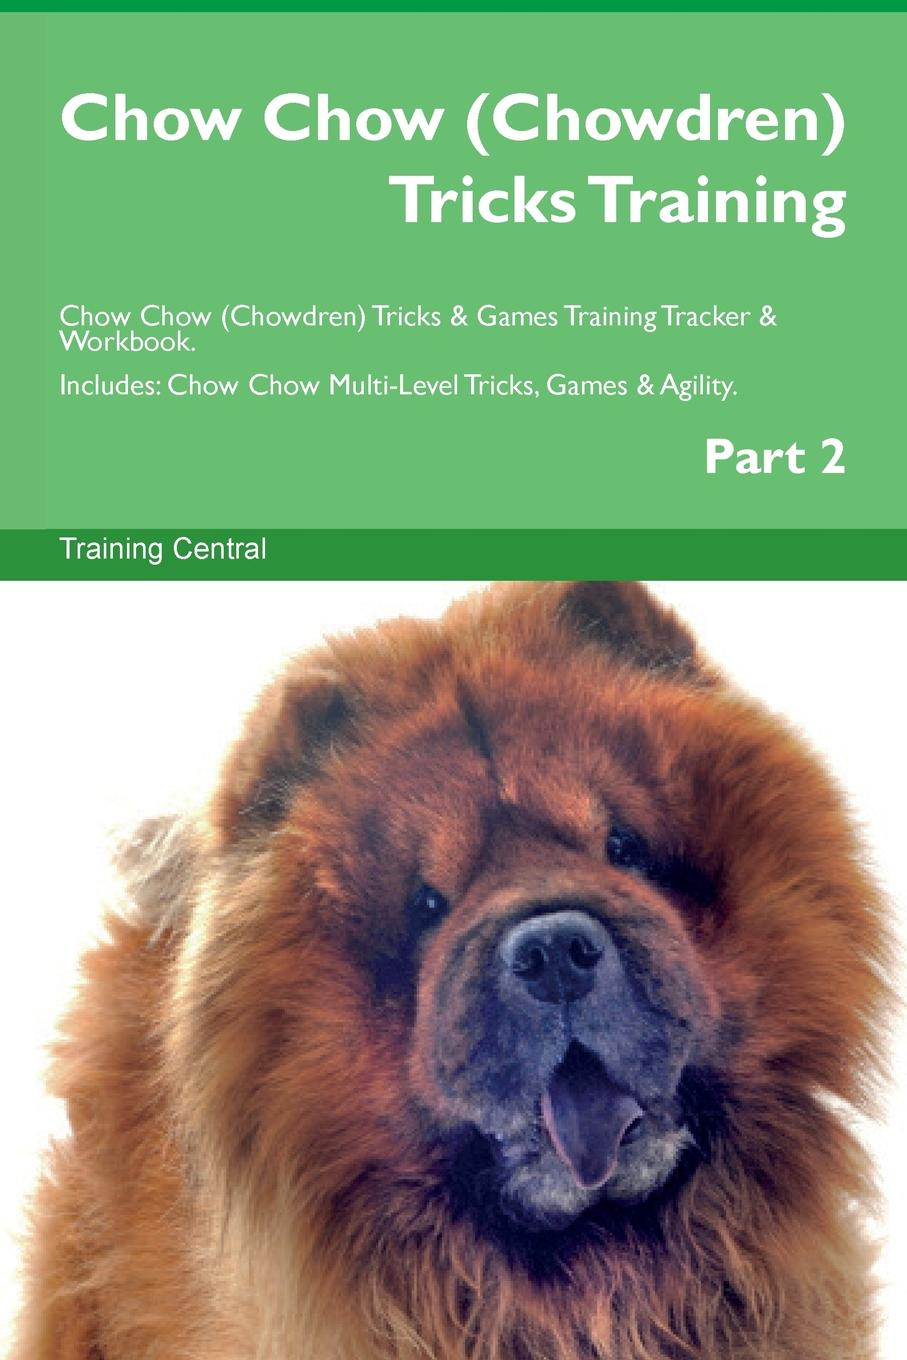 Training Central Chow Chow (Chowdren) Tricks Training Chow Chow (Chowdren) Tricks . Games Training Tracker . Workbook. Includes. Chow Chow Multi-Level Tricks, Games . Agility. Part 2 vivian chow macao